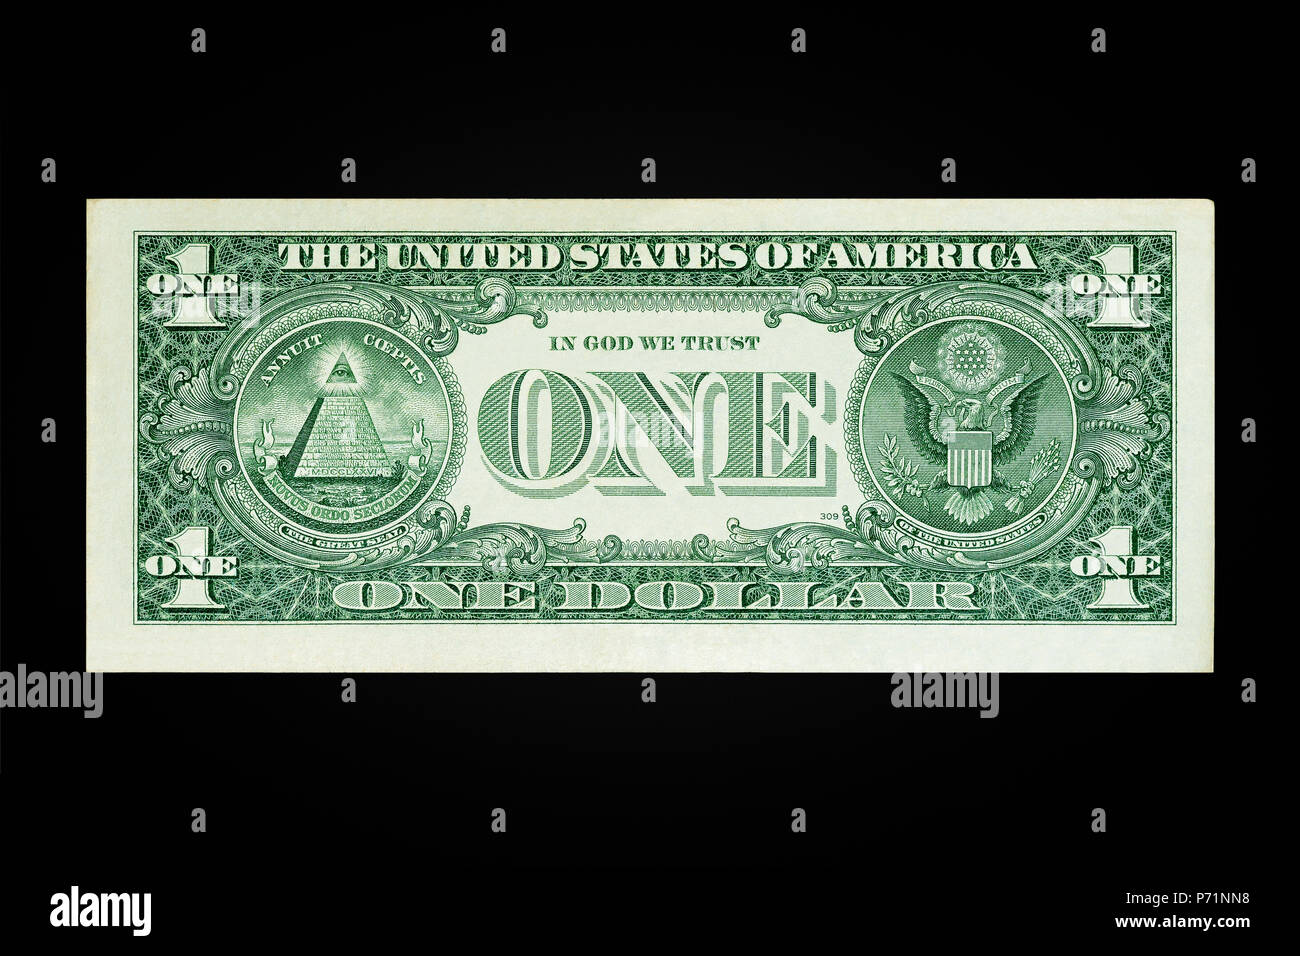 US One Dollar Note Reverse - Stock Image